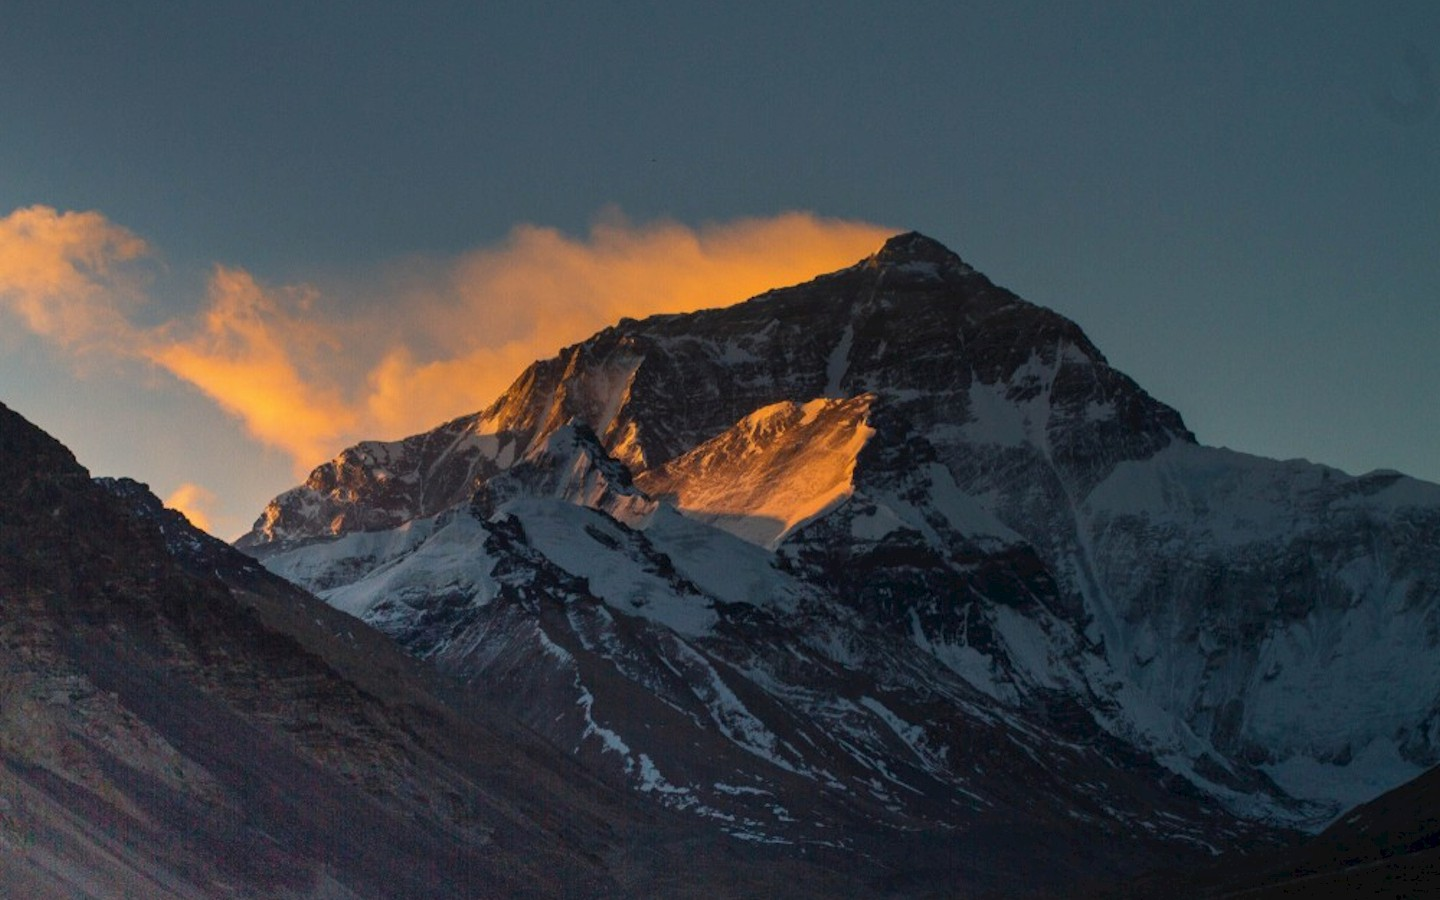 Mount Everest, also known in Nepal as Sagarmāthā and in Tibet as Chomolungma, is Earth's highest mountain. It is located in the Mahalangur mountain range in Nepal and Tibet. Its peak is 8,848 metres (29,029 ft) above sea level